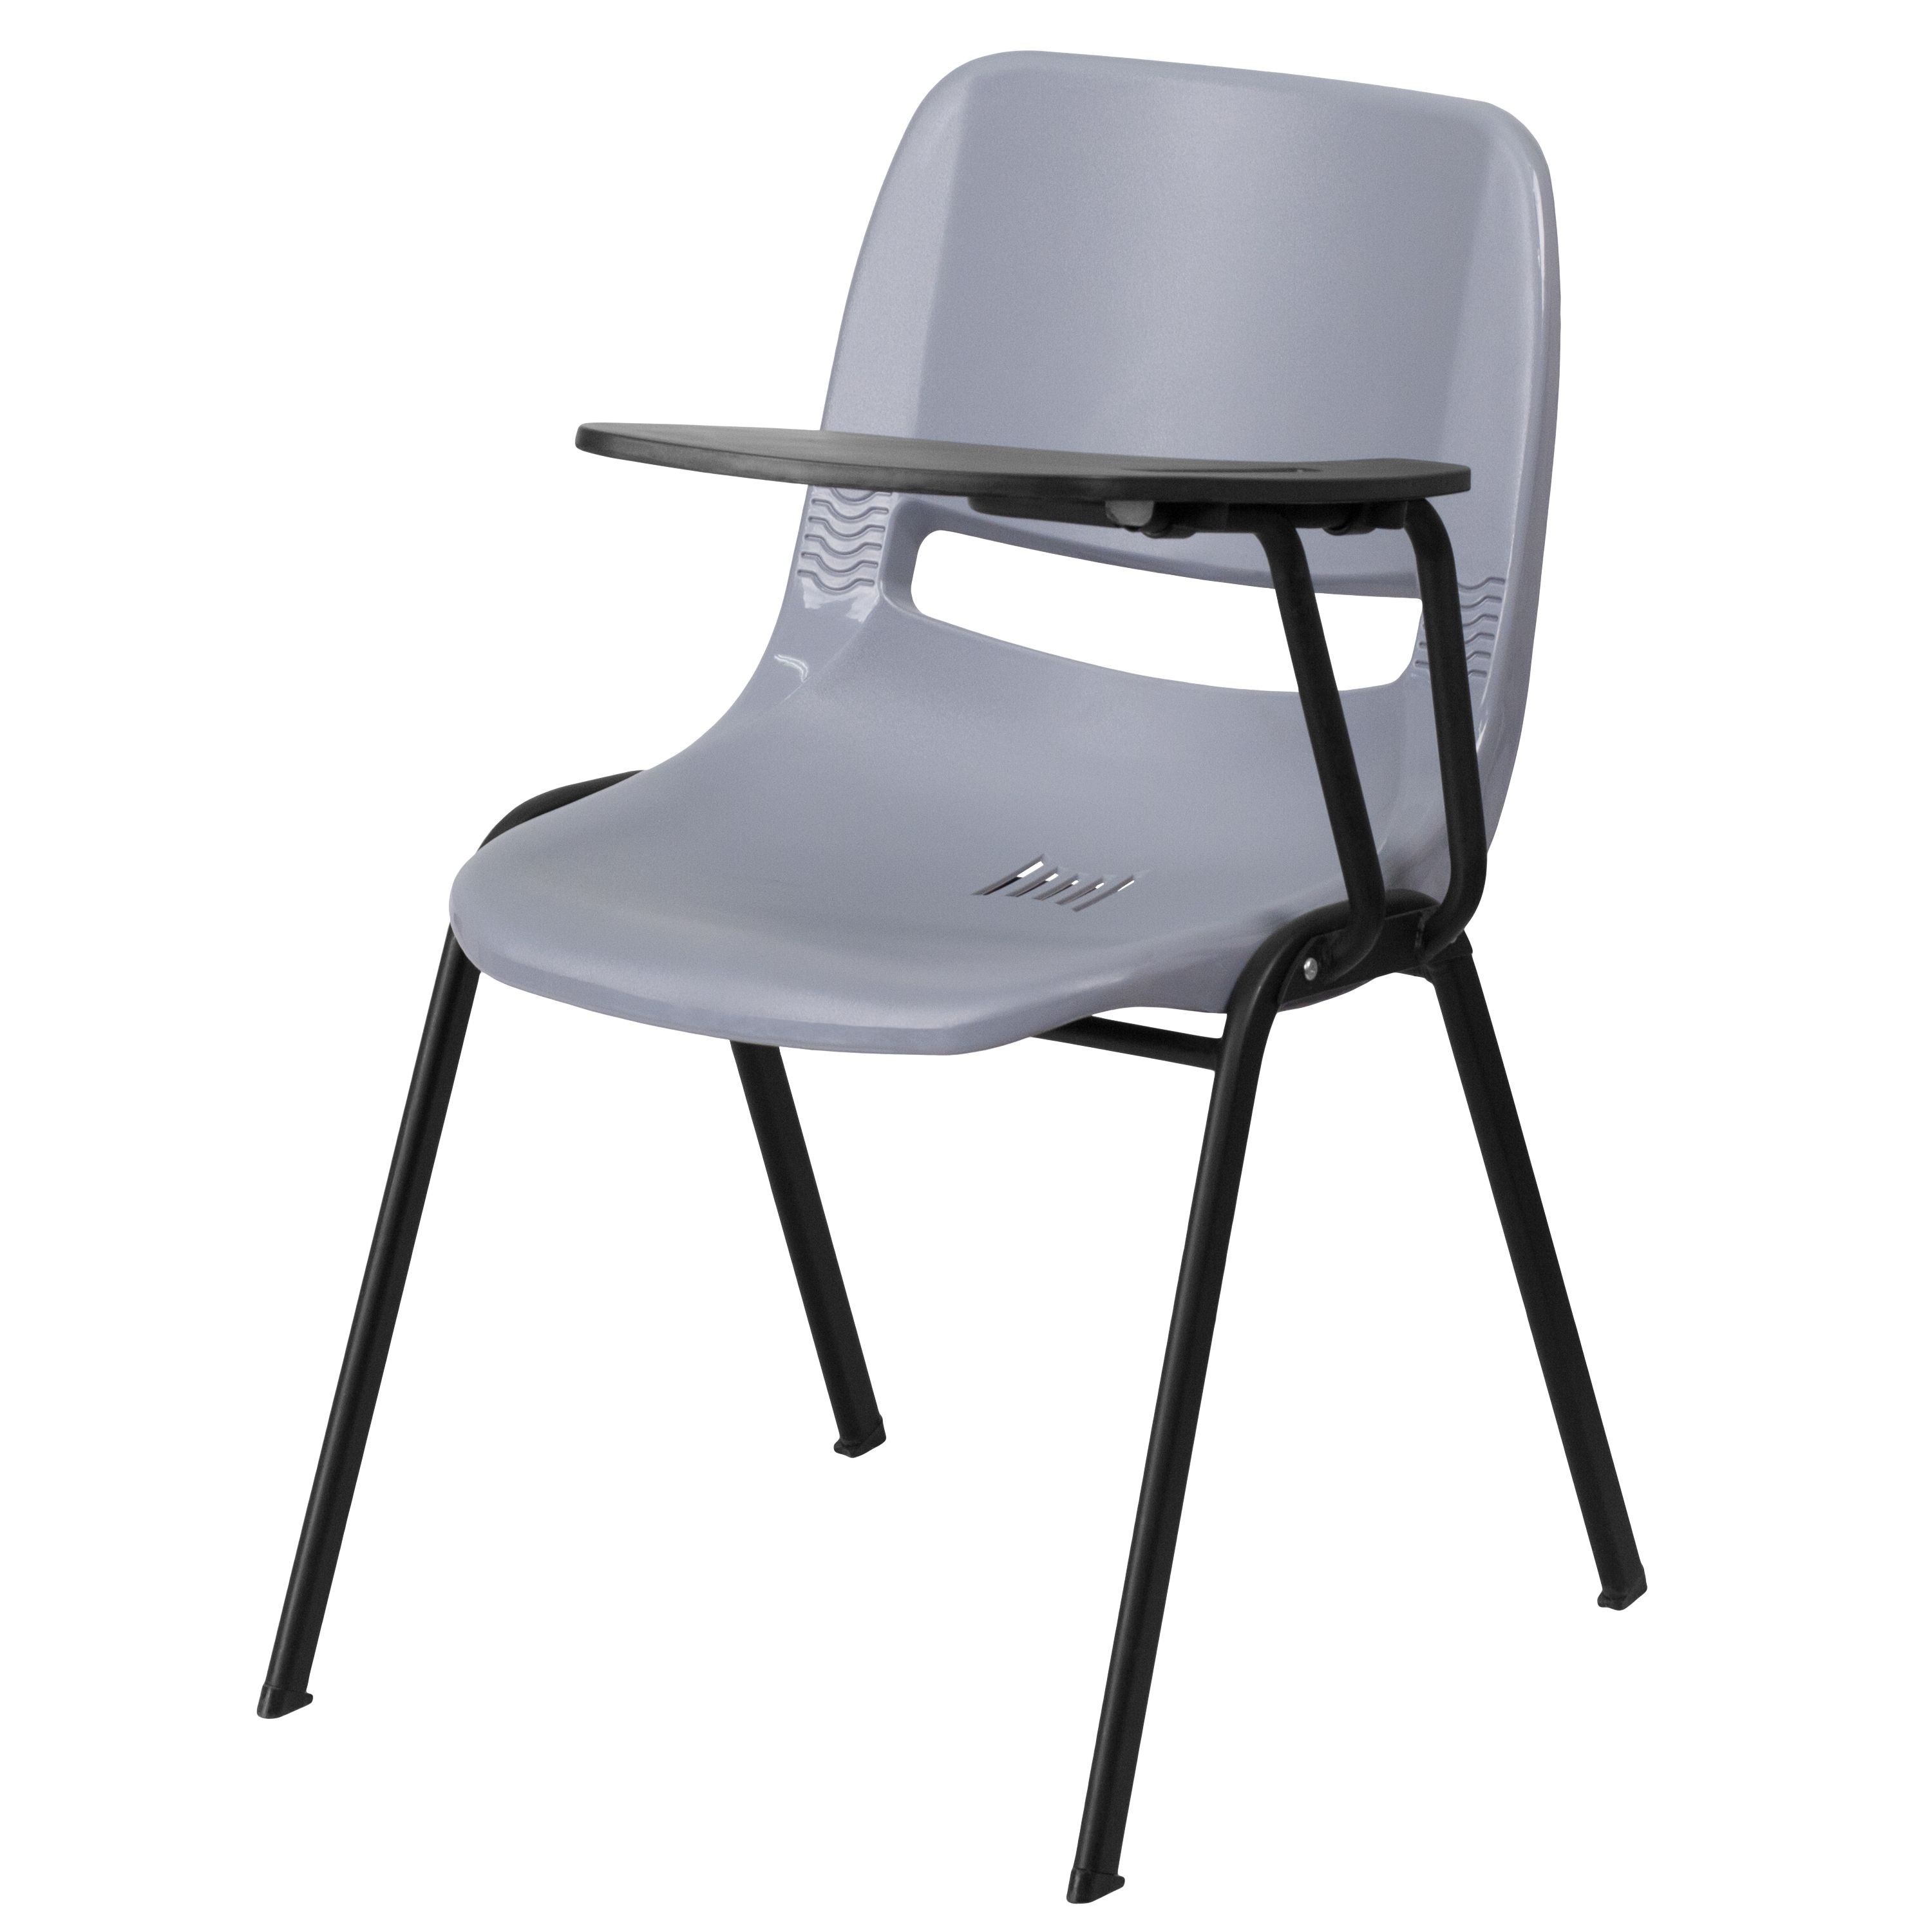 flash furniture rut eo1 gy ltab gg gray ergonomic shell chair with